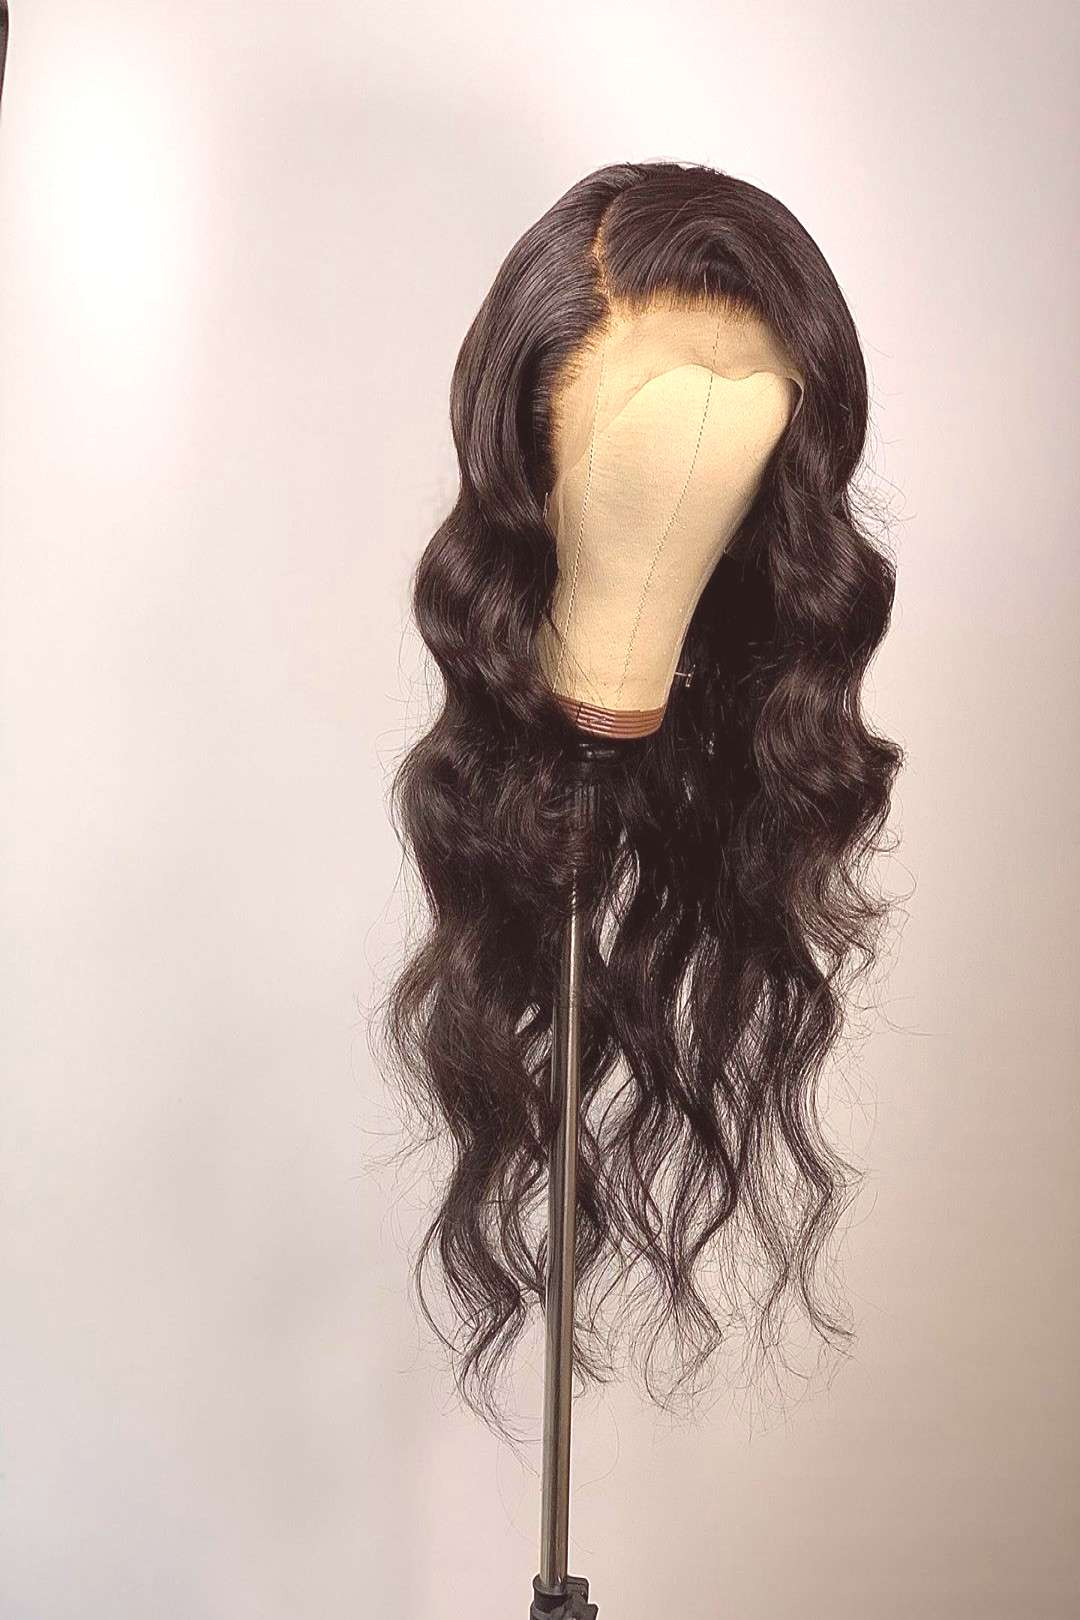 Faitheestyles Hair on April 20 2020 one or more people